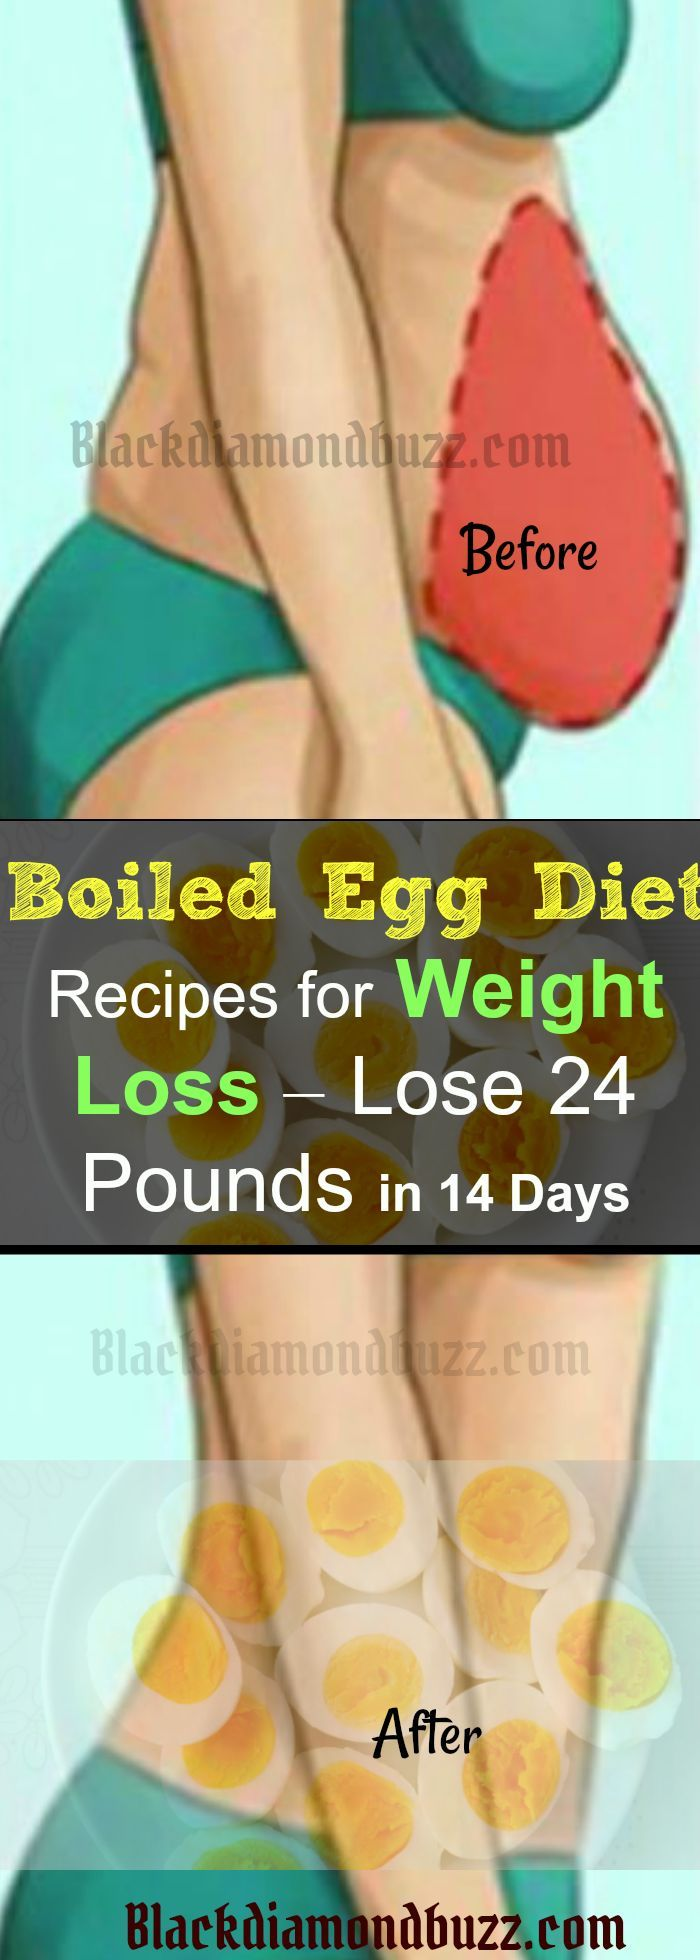 Boiled Egg Diet Recipes for Weight Loss – Lose 24 Pounds in 14 Days- Namely, few eggs, vegetables and citric fruits have the ability to make wonders. This combination will speed up your metabolism and thus will burn the fat. Well, the best part is that you will not feel hunger.